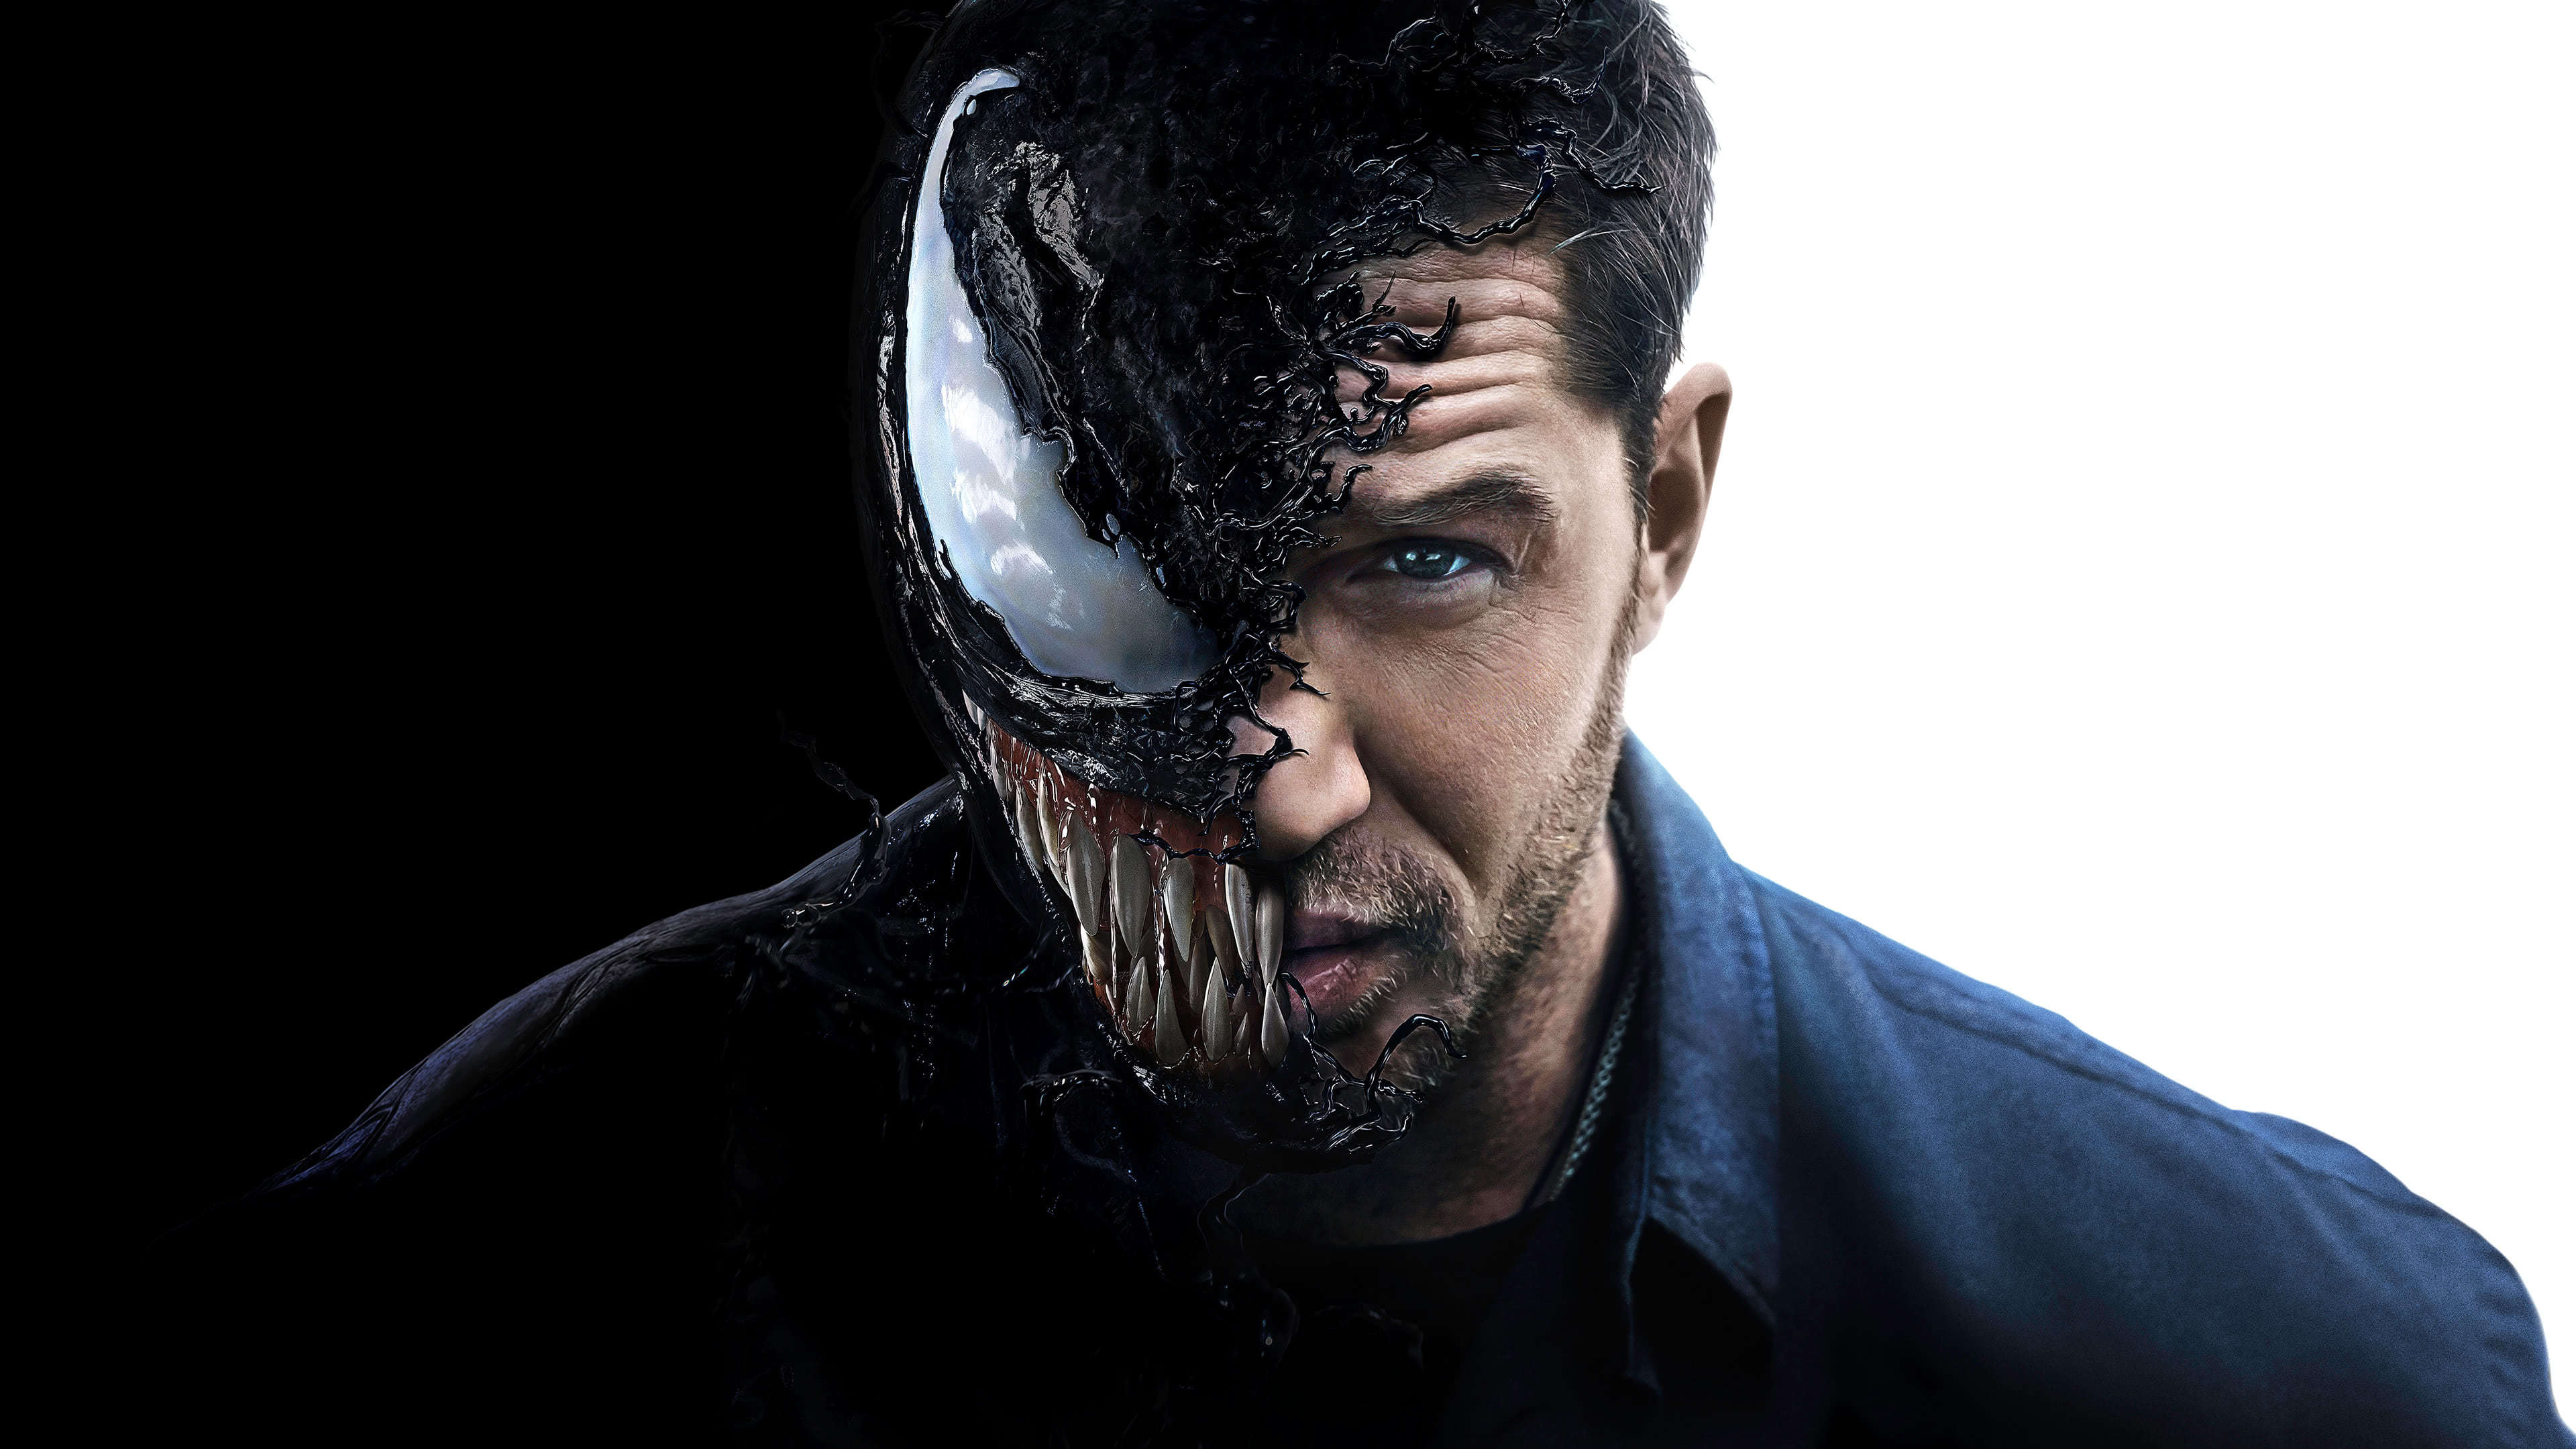 Venom Tom Hardy UHD 4K Wallpaper Pixelz 3840x2160